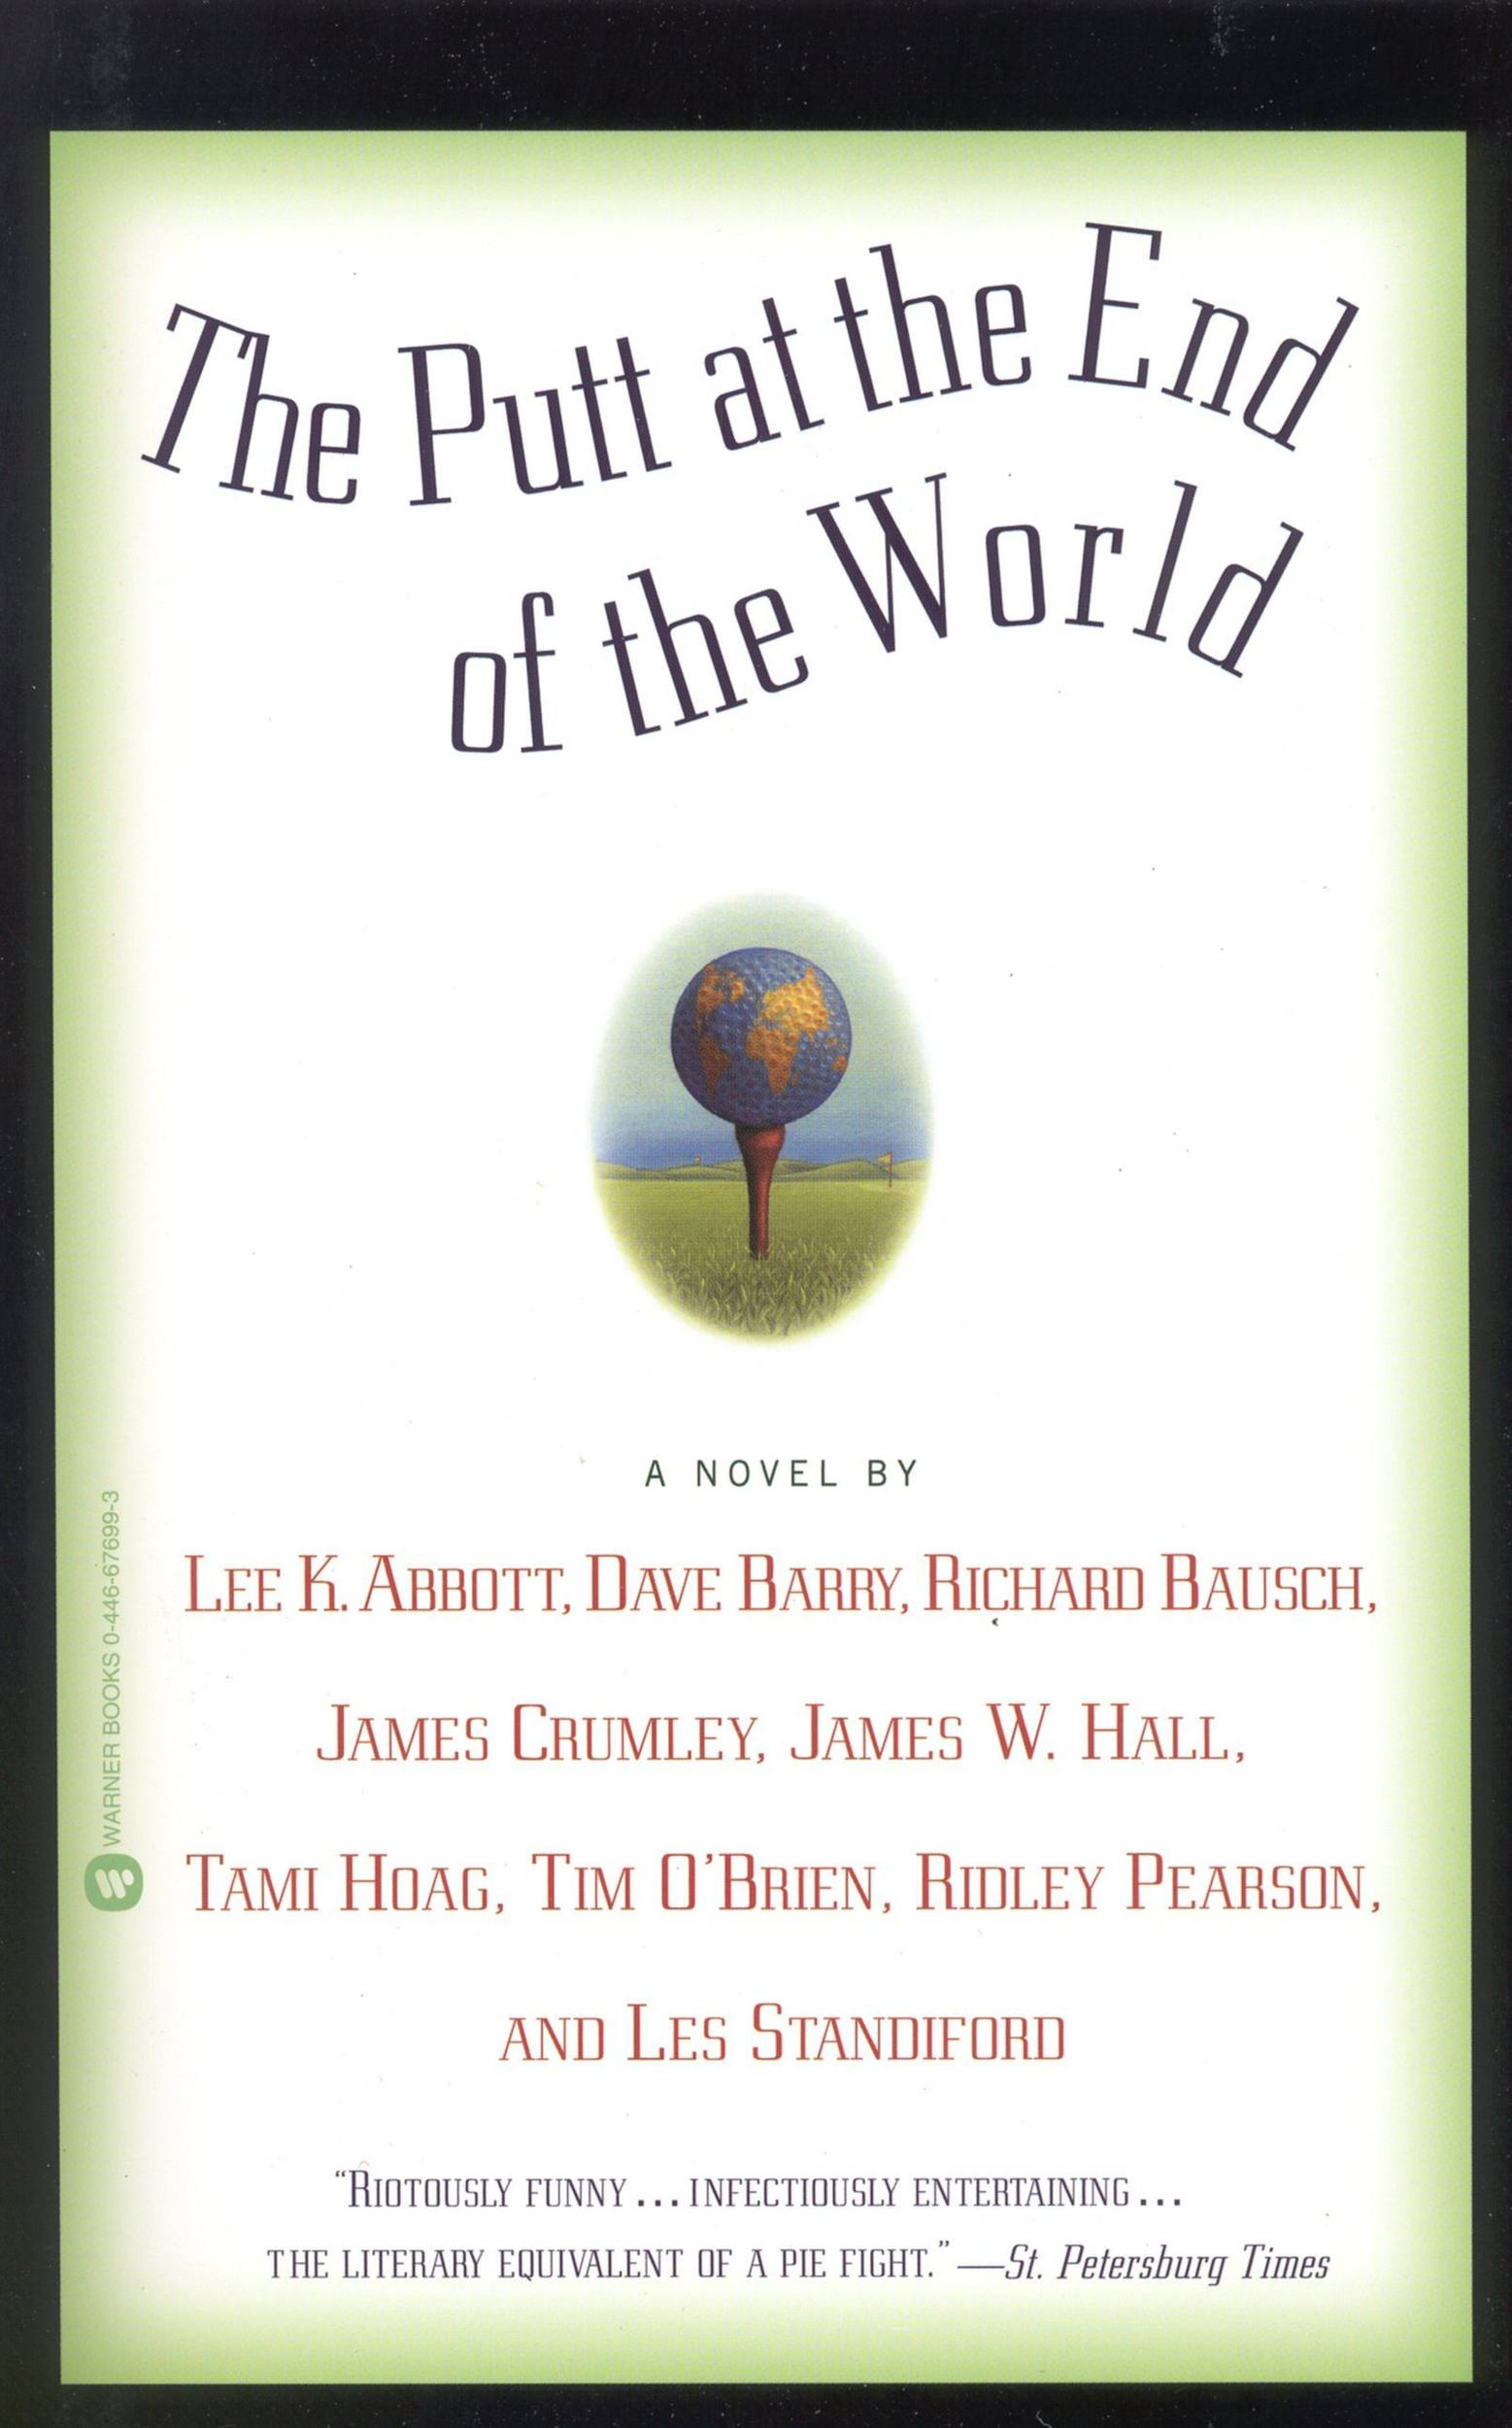 The Putt at the End of the World By: Dave Barry,Lee K. Abbott